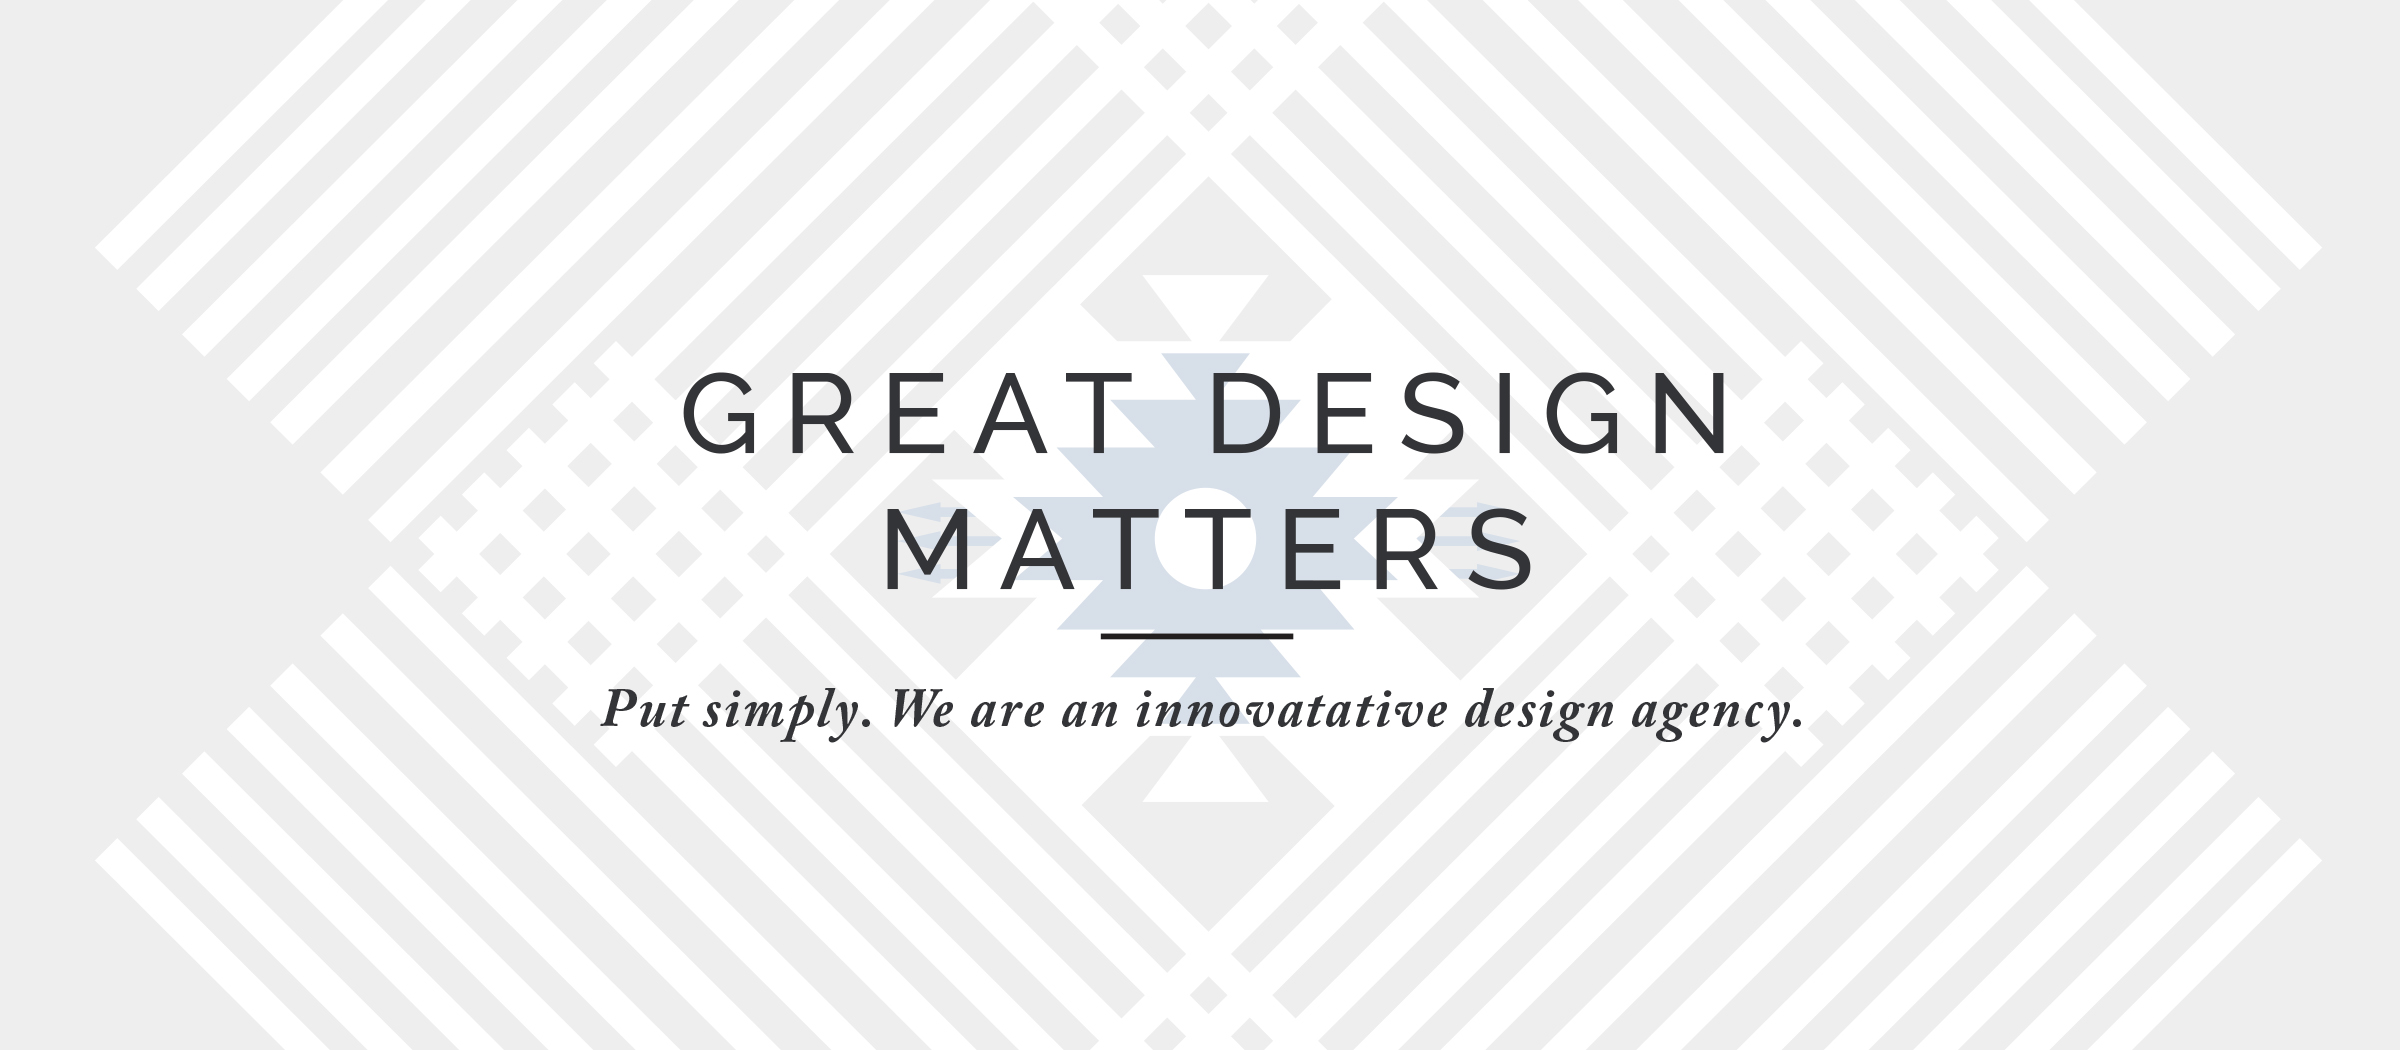 Great Design Matters. Put simply, we are an innovative web and graphic design studio.